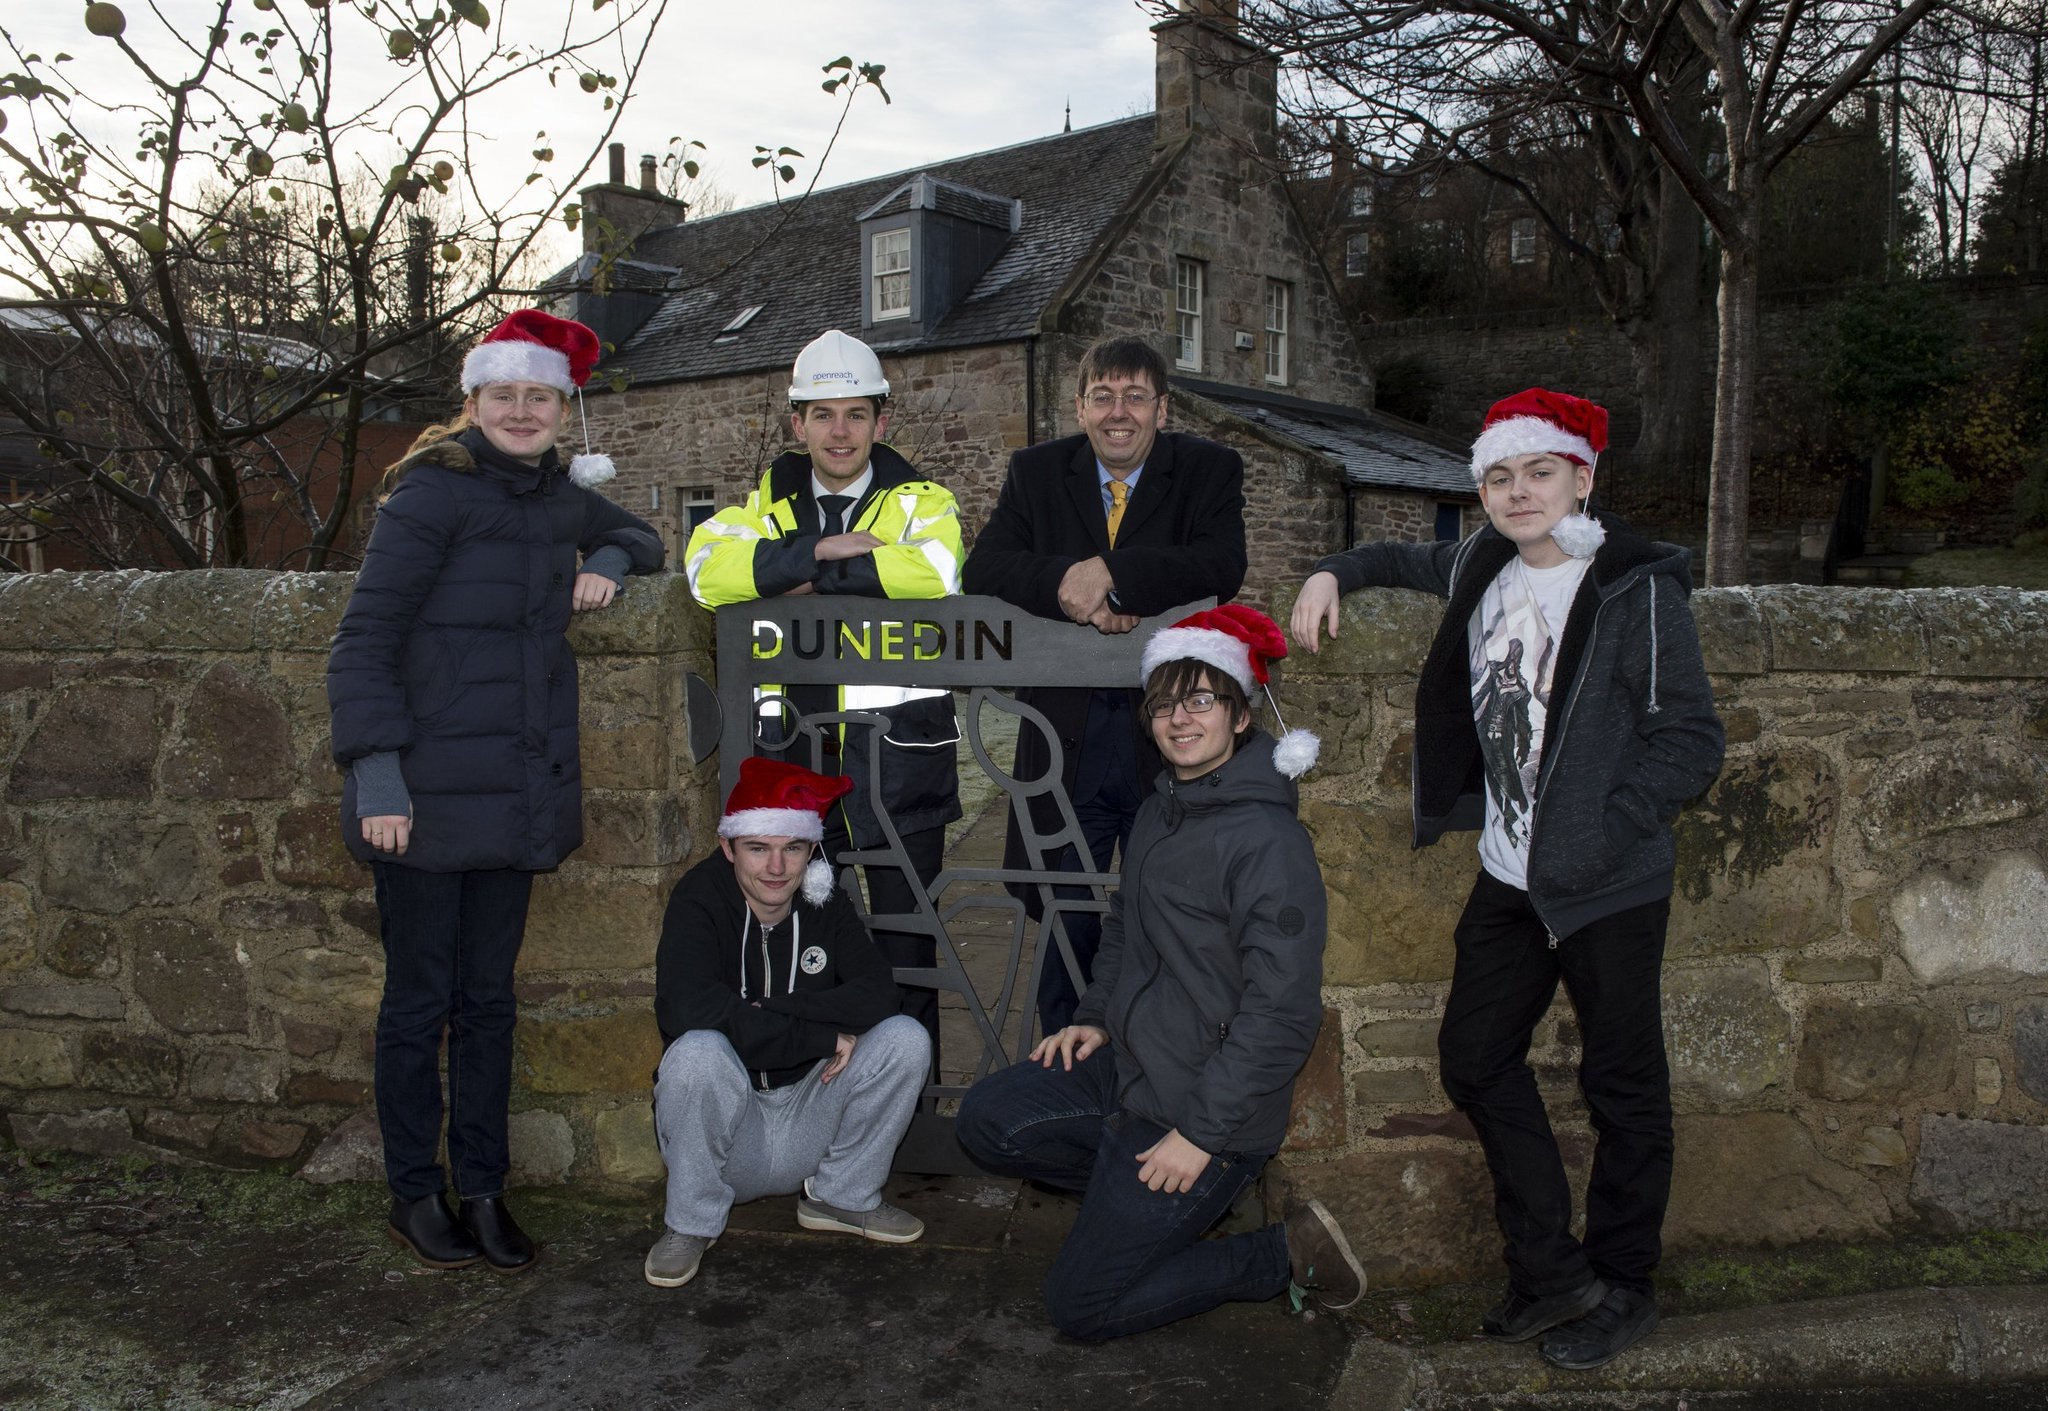 Dunedin pupils and BT Openreach at school gate